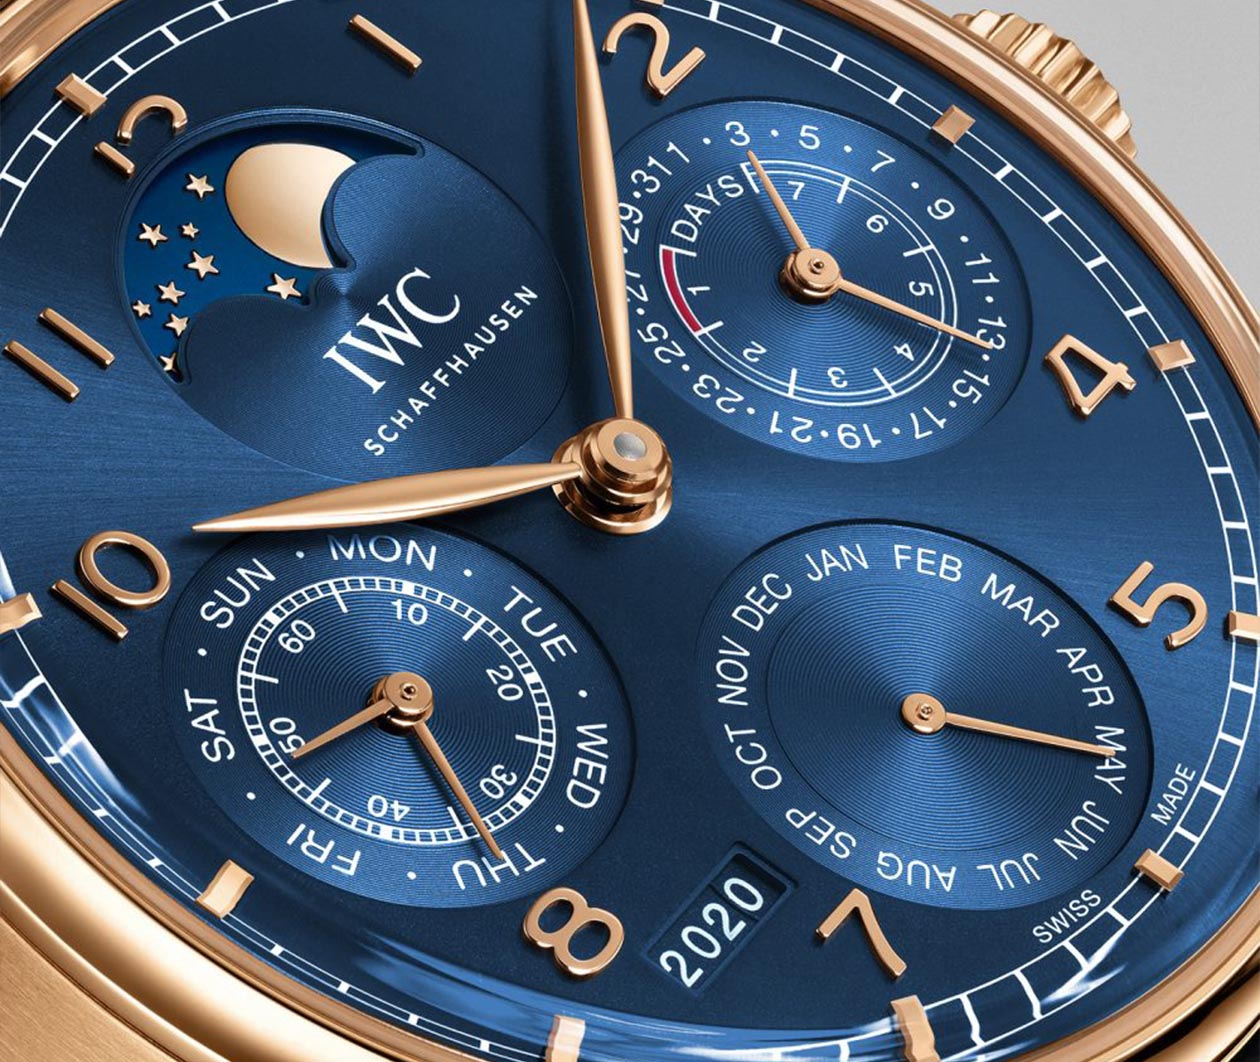 IWC Portugieser PerpetualCalendarBoutiqueEdition IW503312 Carousel 4 FINAL